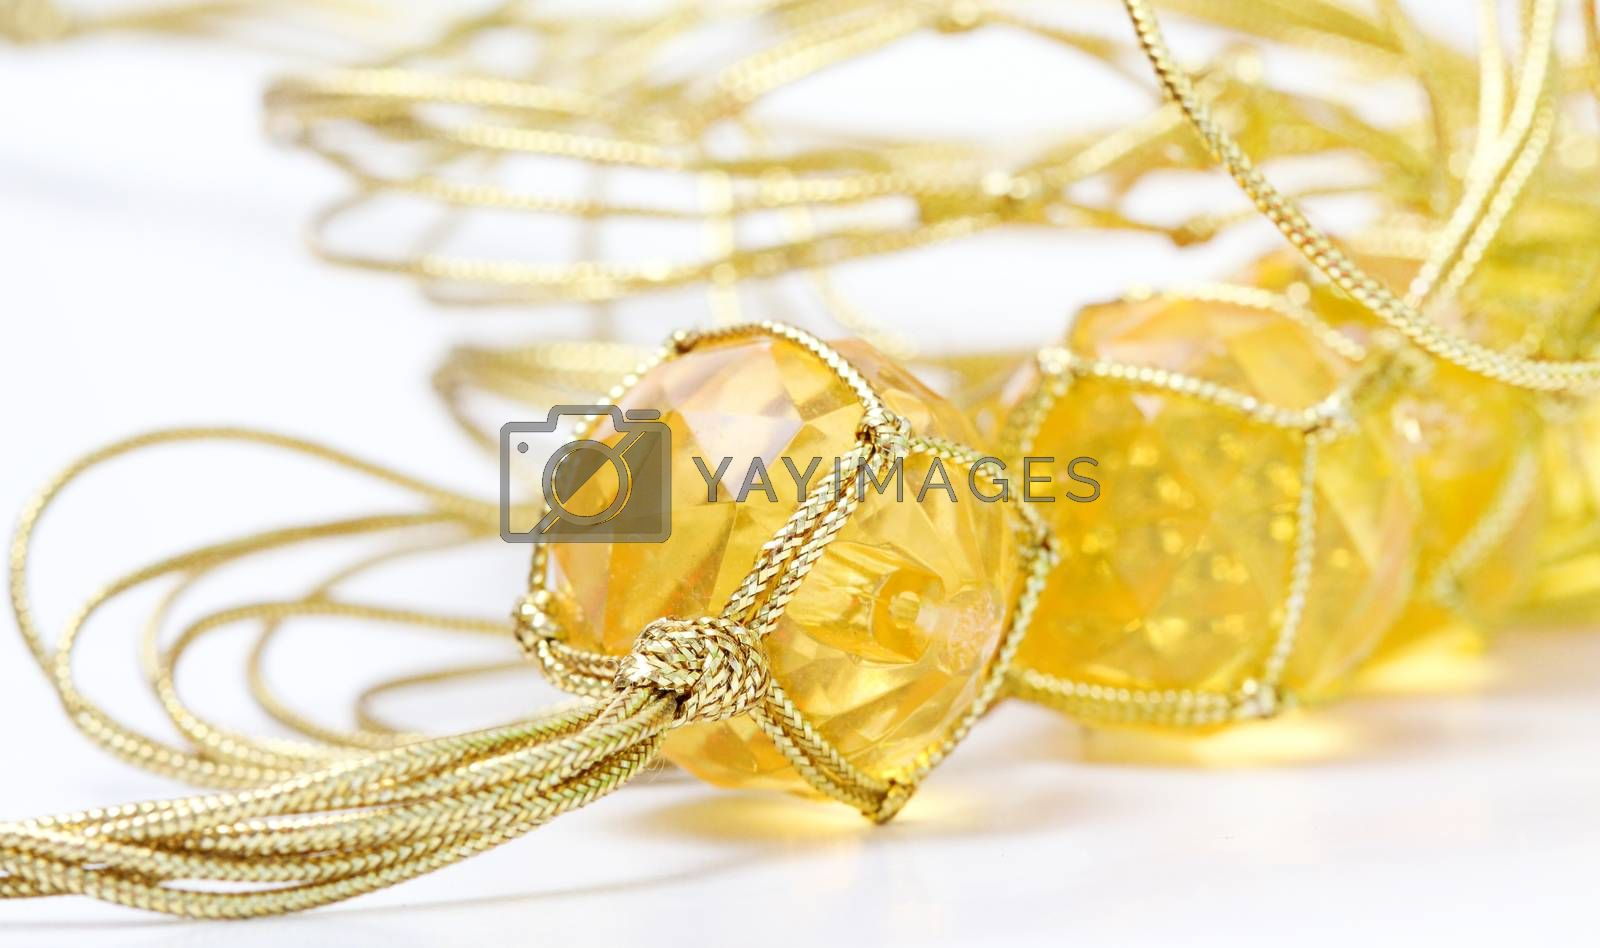 Royalty free image of necklace with cheap plastic gems with golden colored rope by nehru